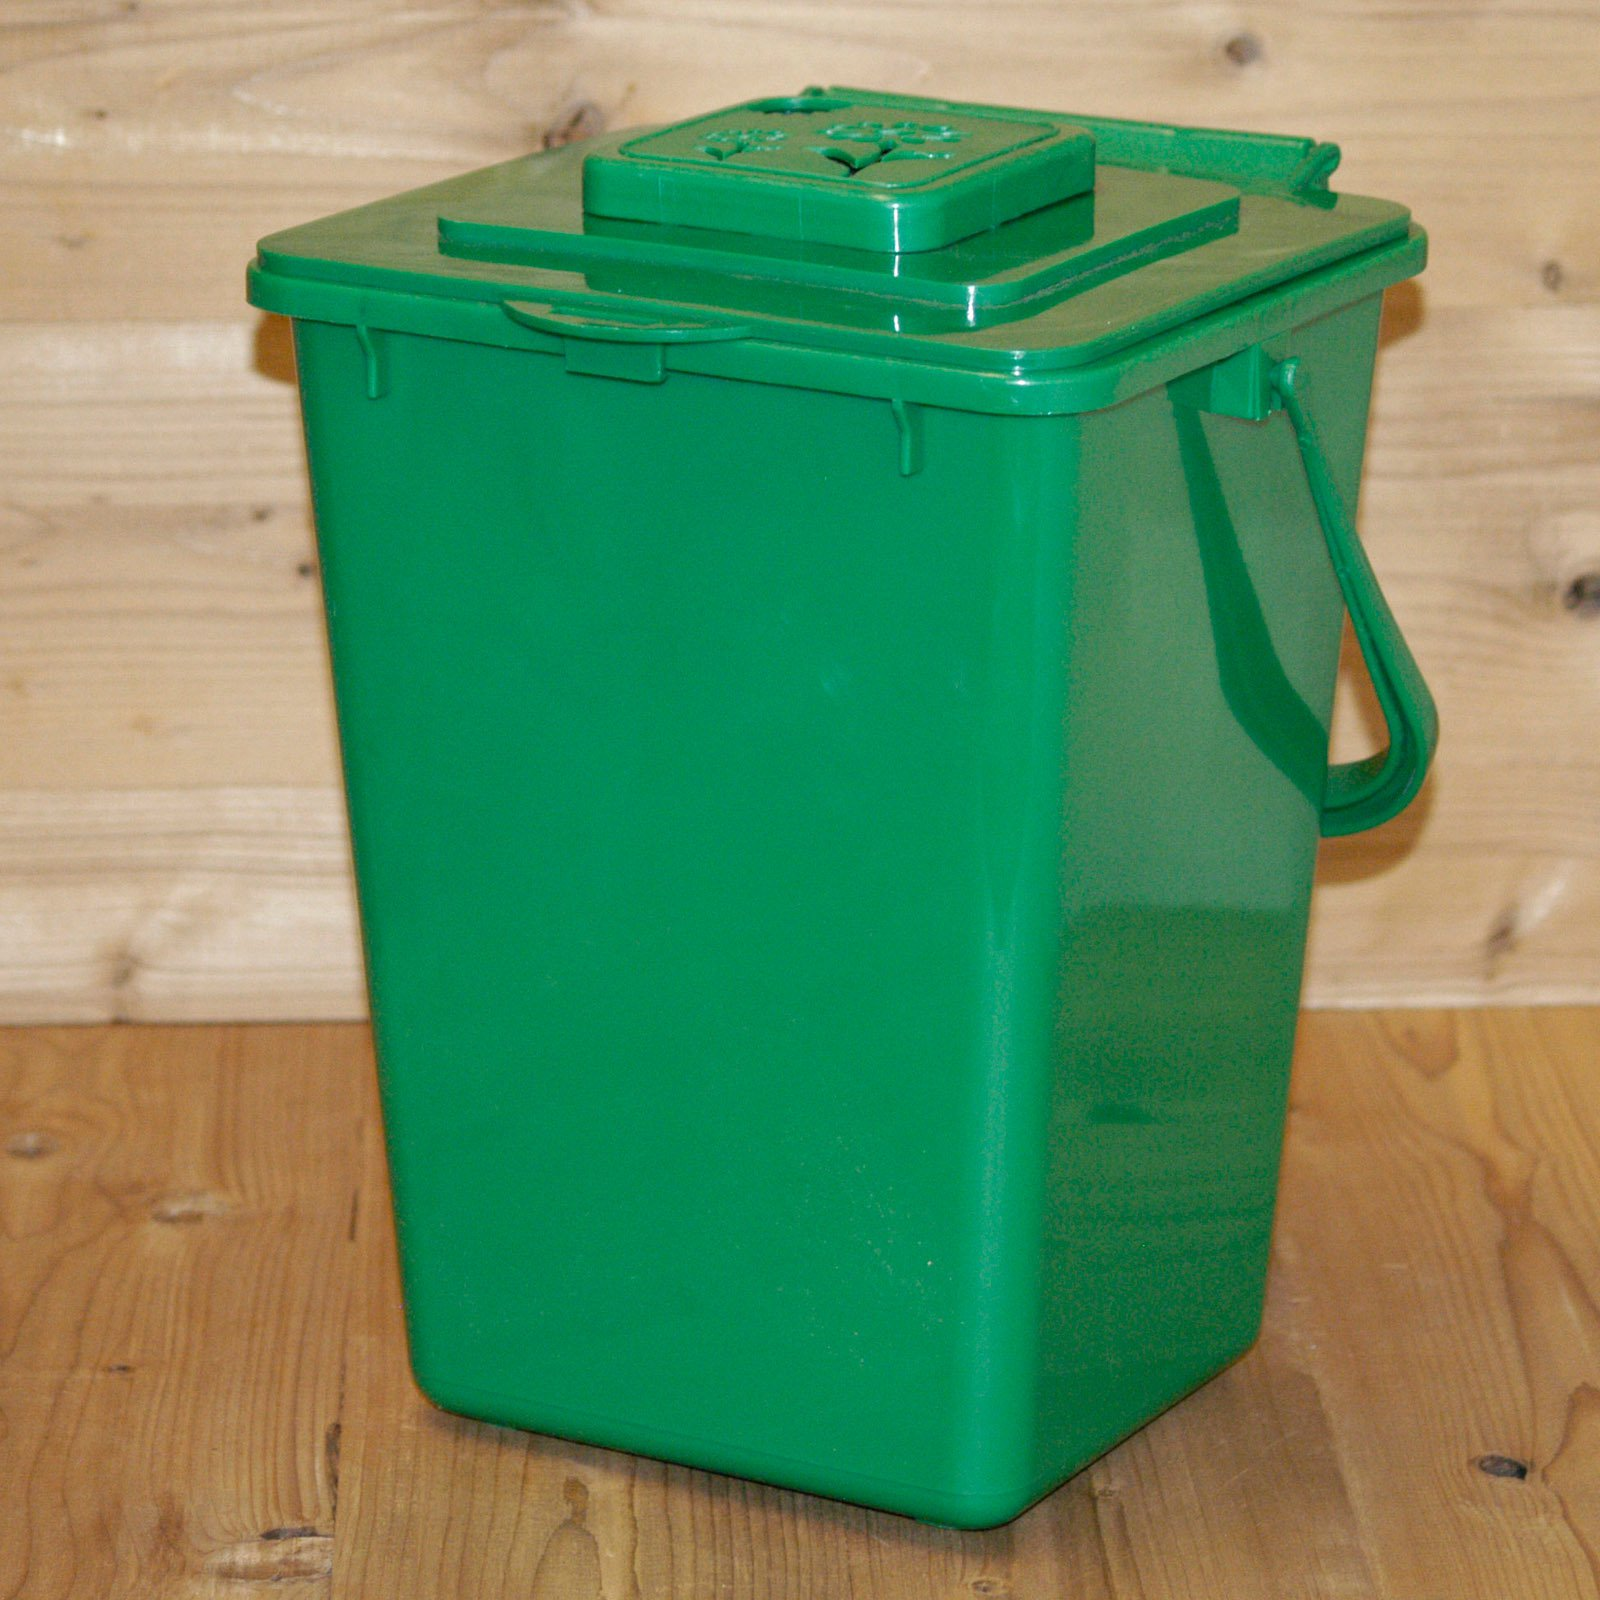 Eco Kitchen Compost Pail With Carbon Filter, Green   Walmart.com